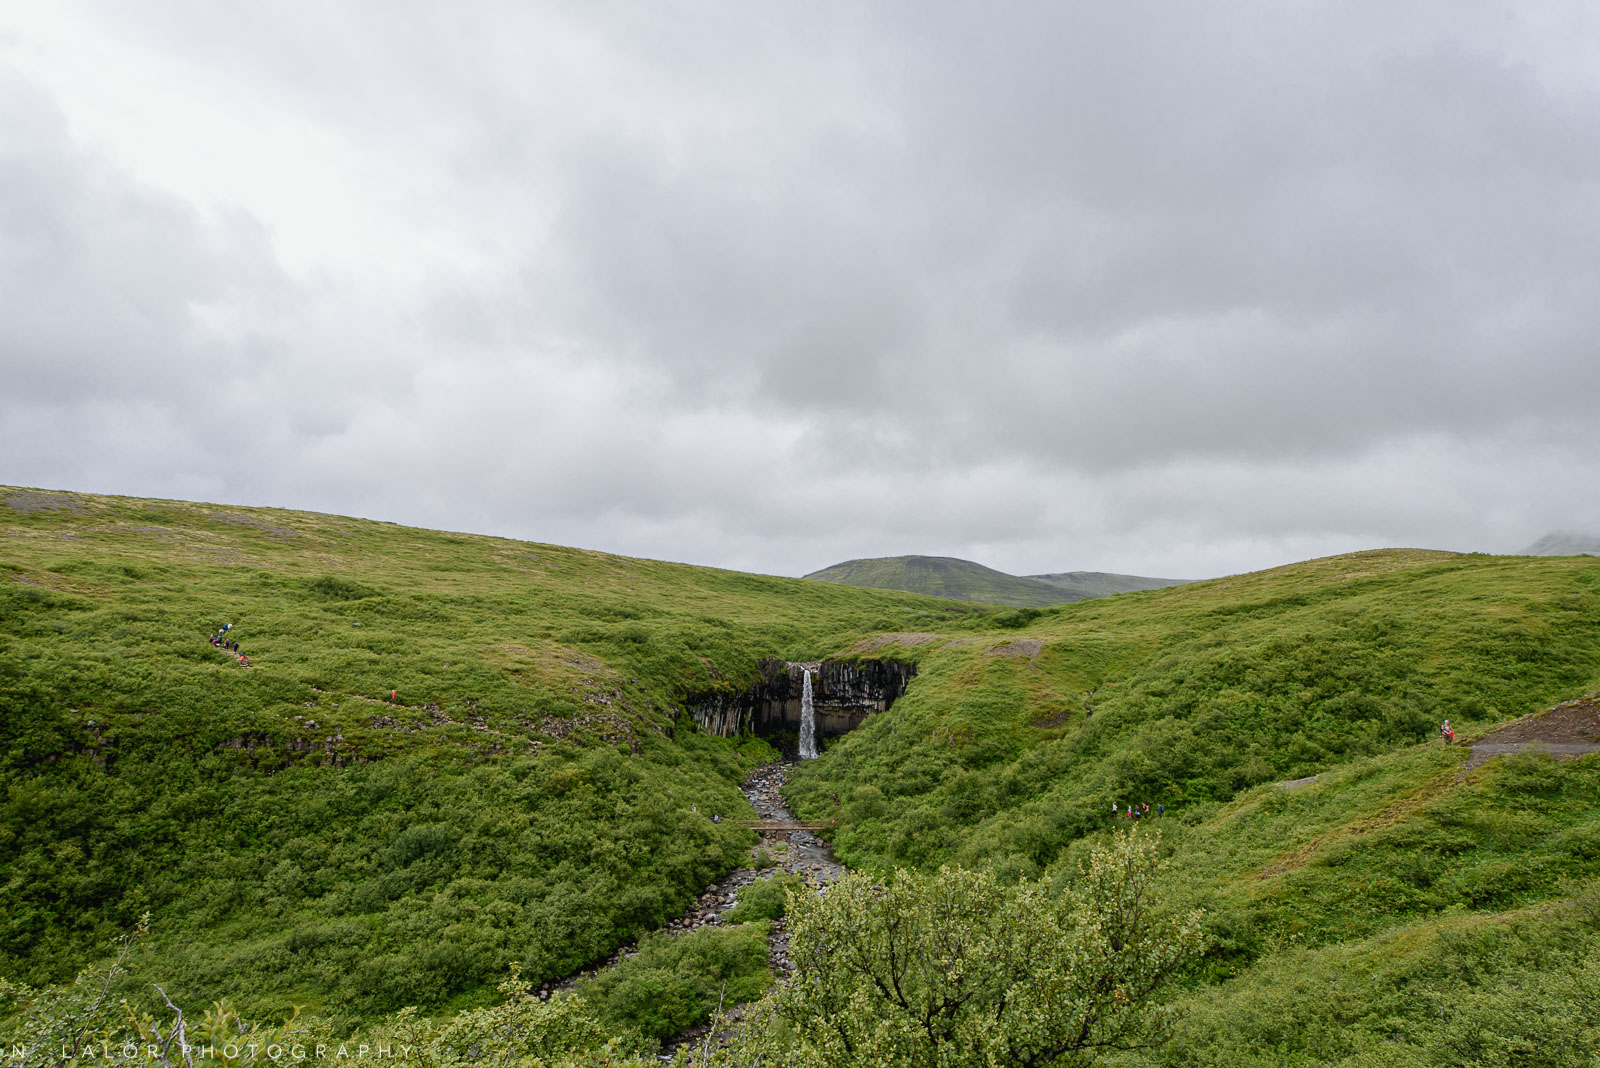 The hike to see Svartifoss (waterfall). From my trip to Iceland in 2018. Photograph by Nataliya Lalor.